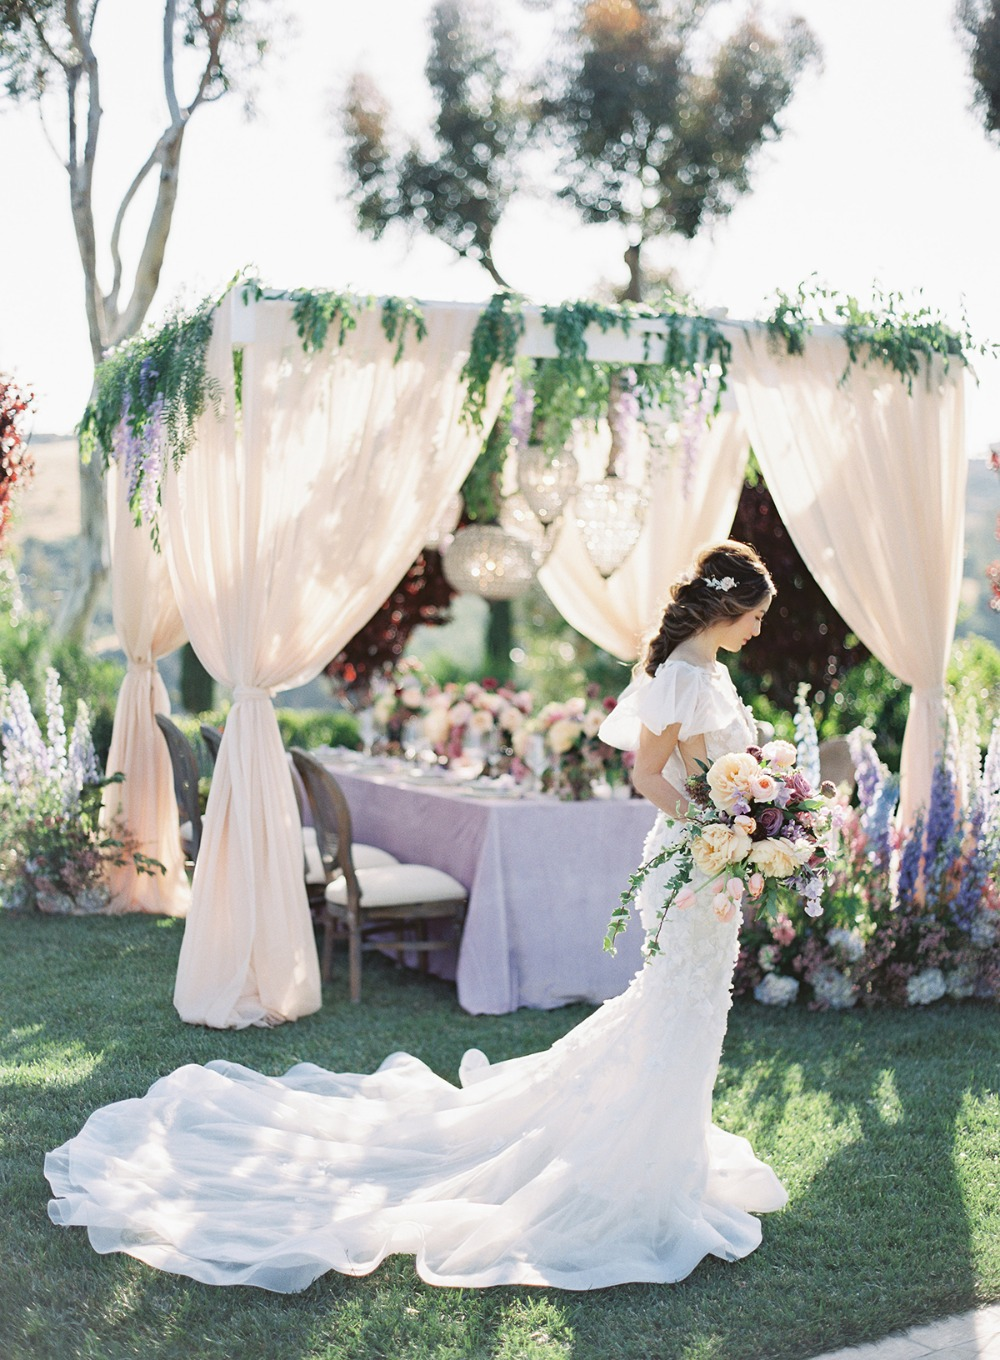 soft and romantic wedding style idea